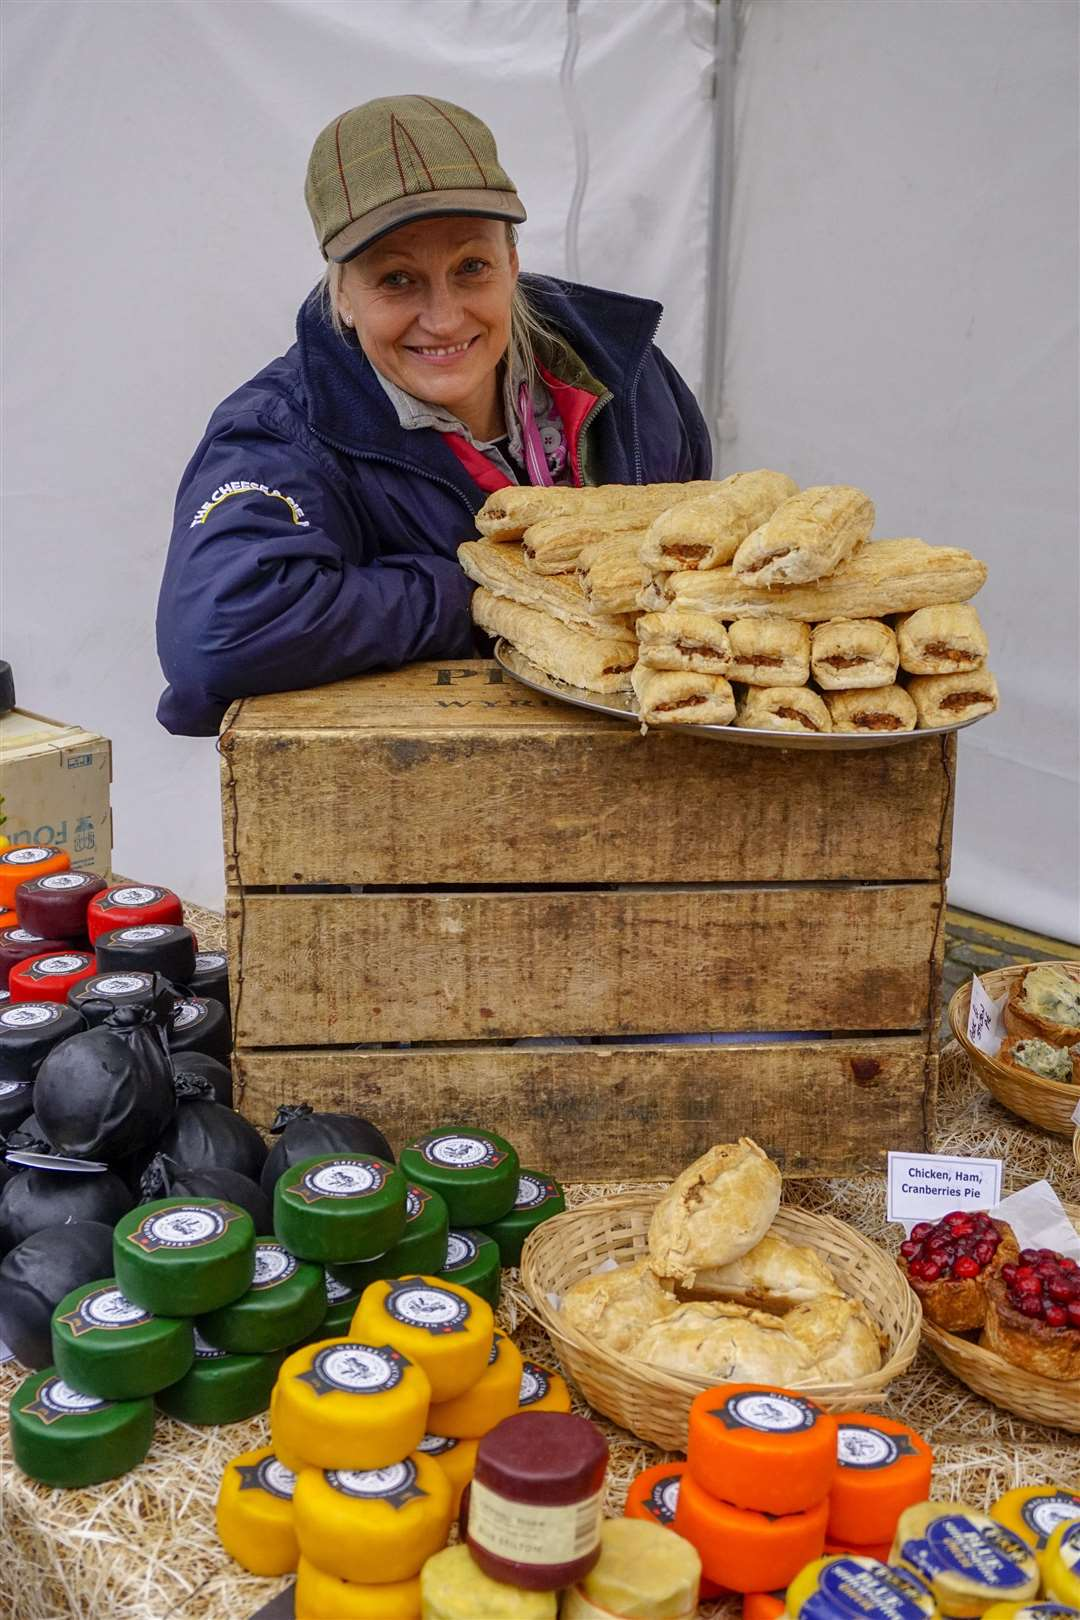 Purdey Gould of the cheese and pie man